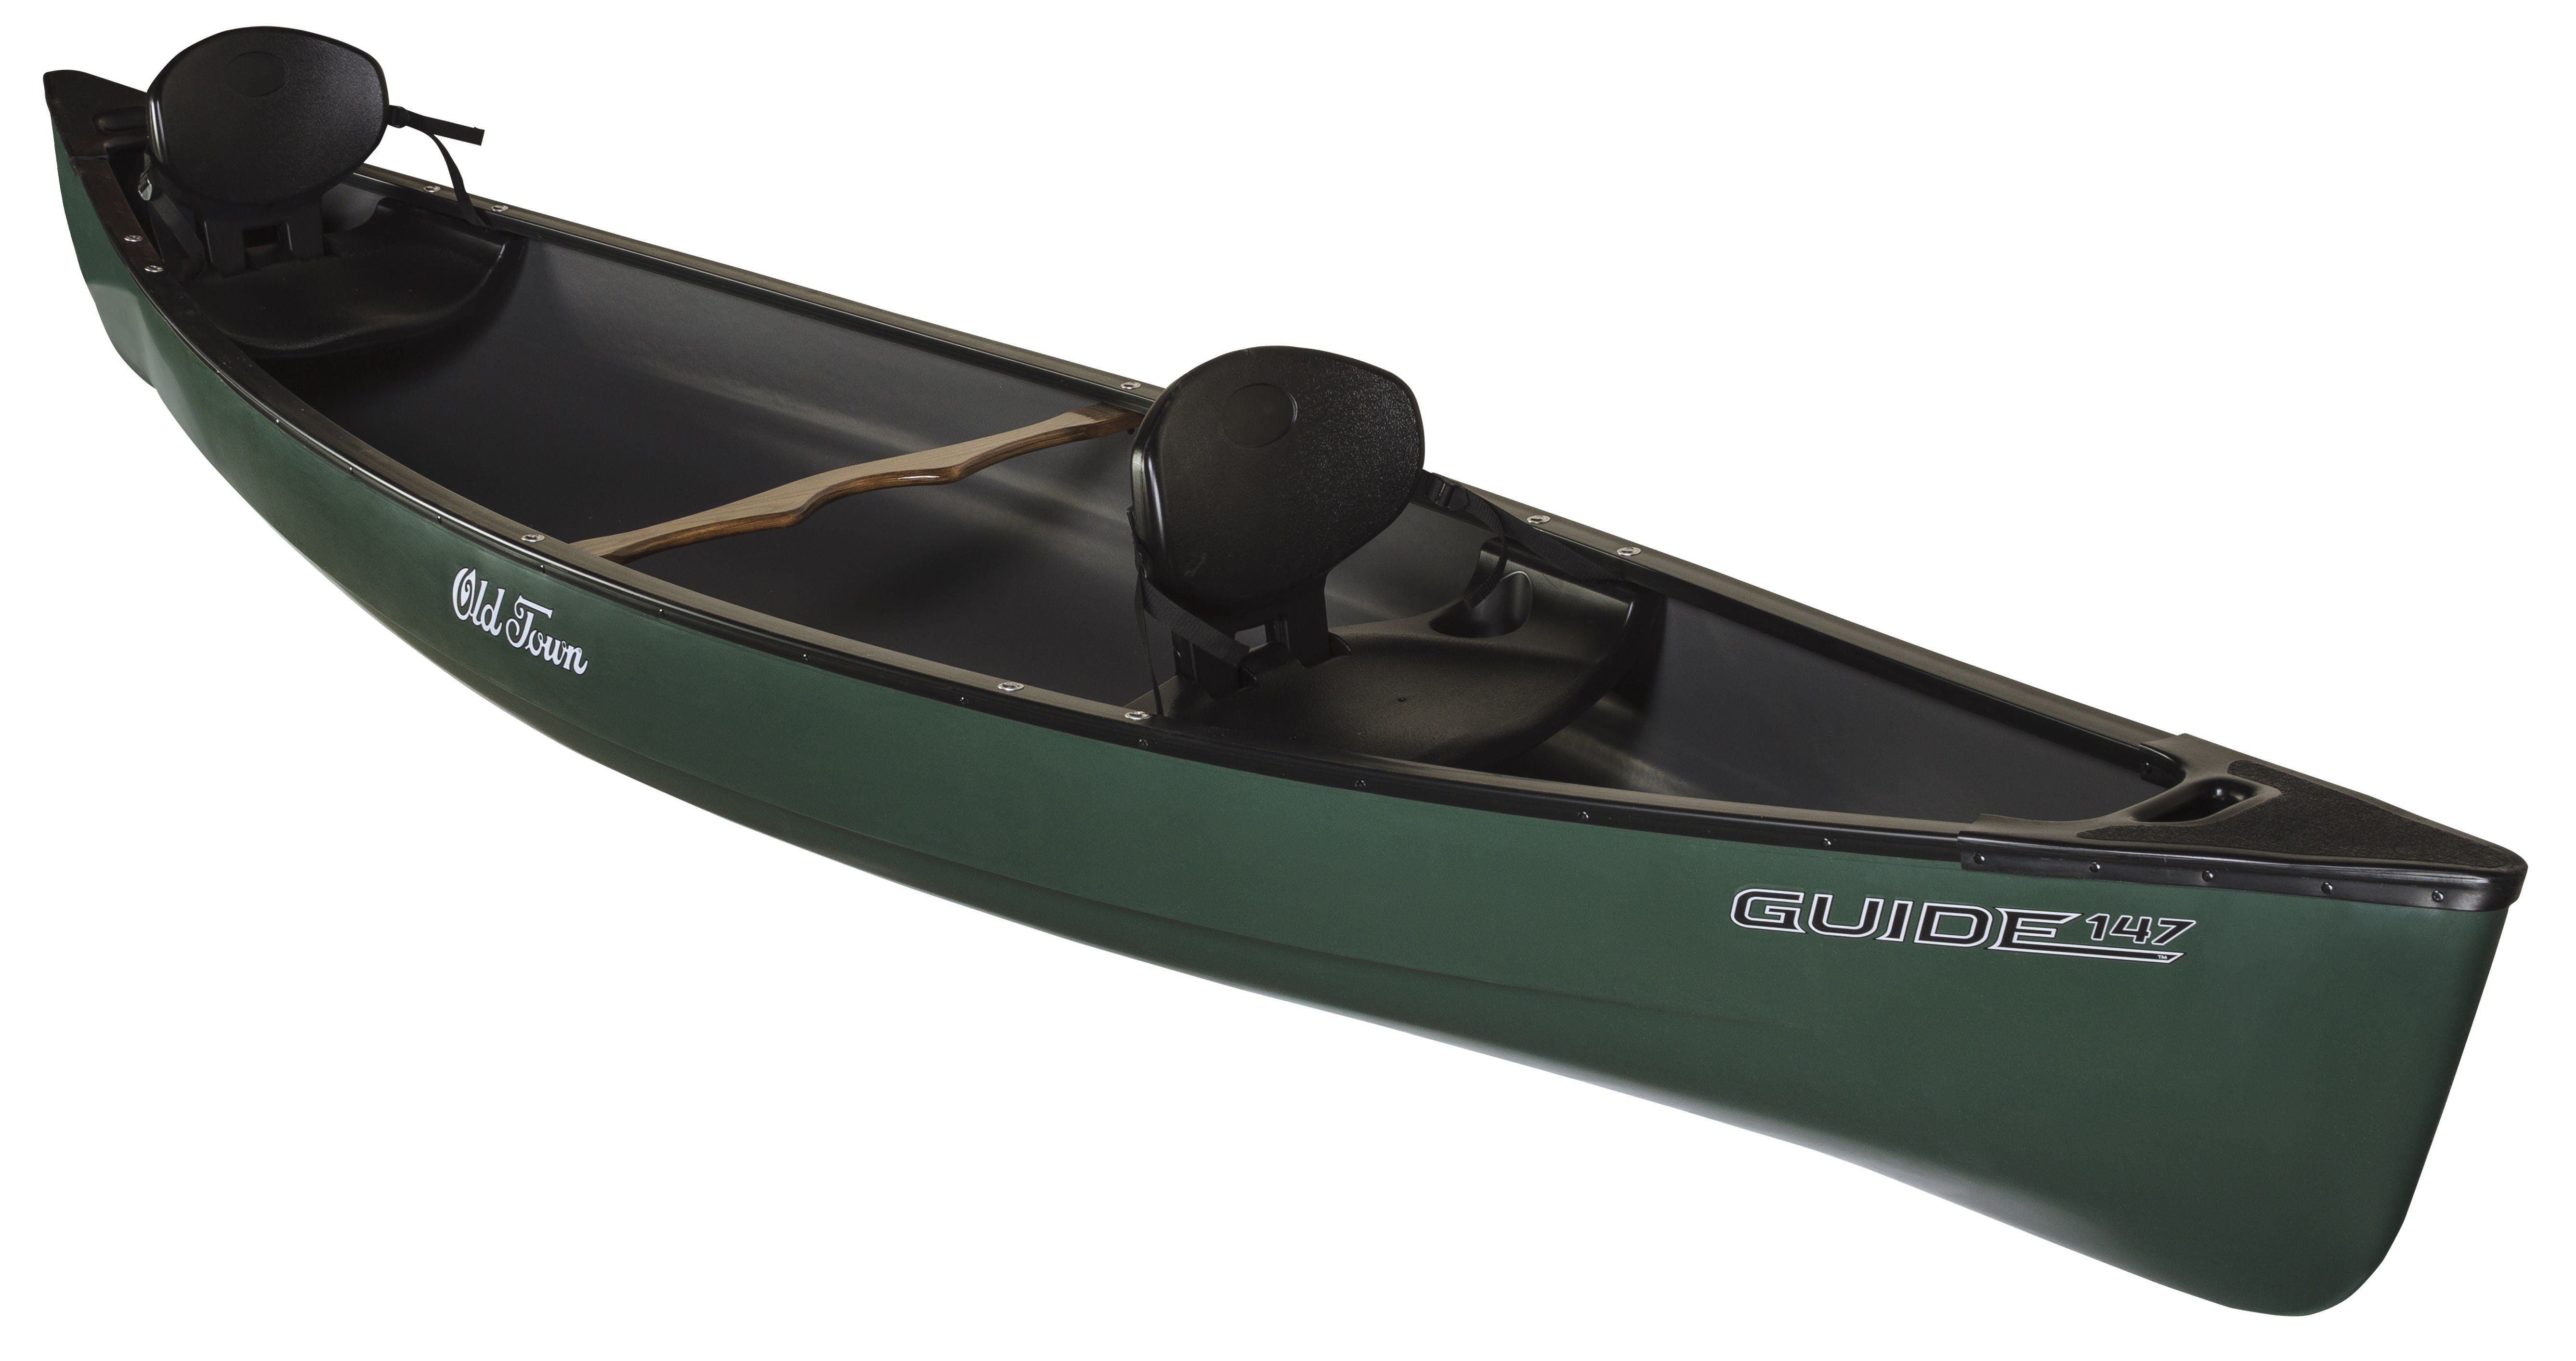 2021 Old Town boat for sale, model of the boat is Guide 147 & Image # 3 of 6